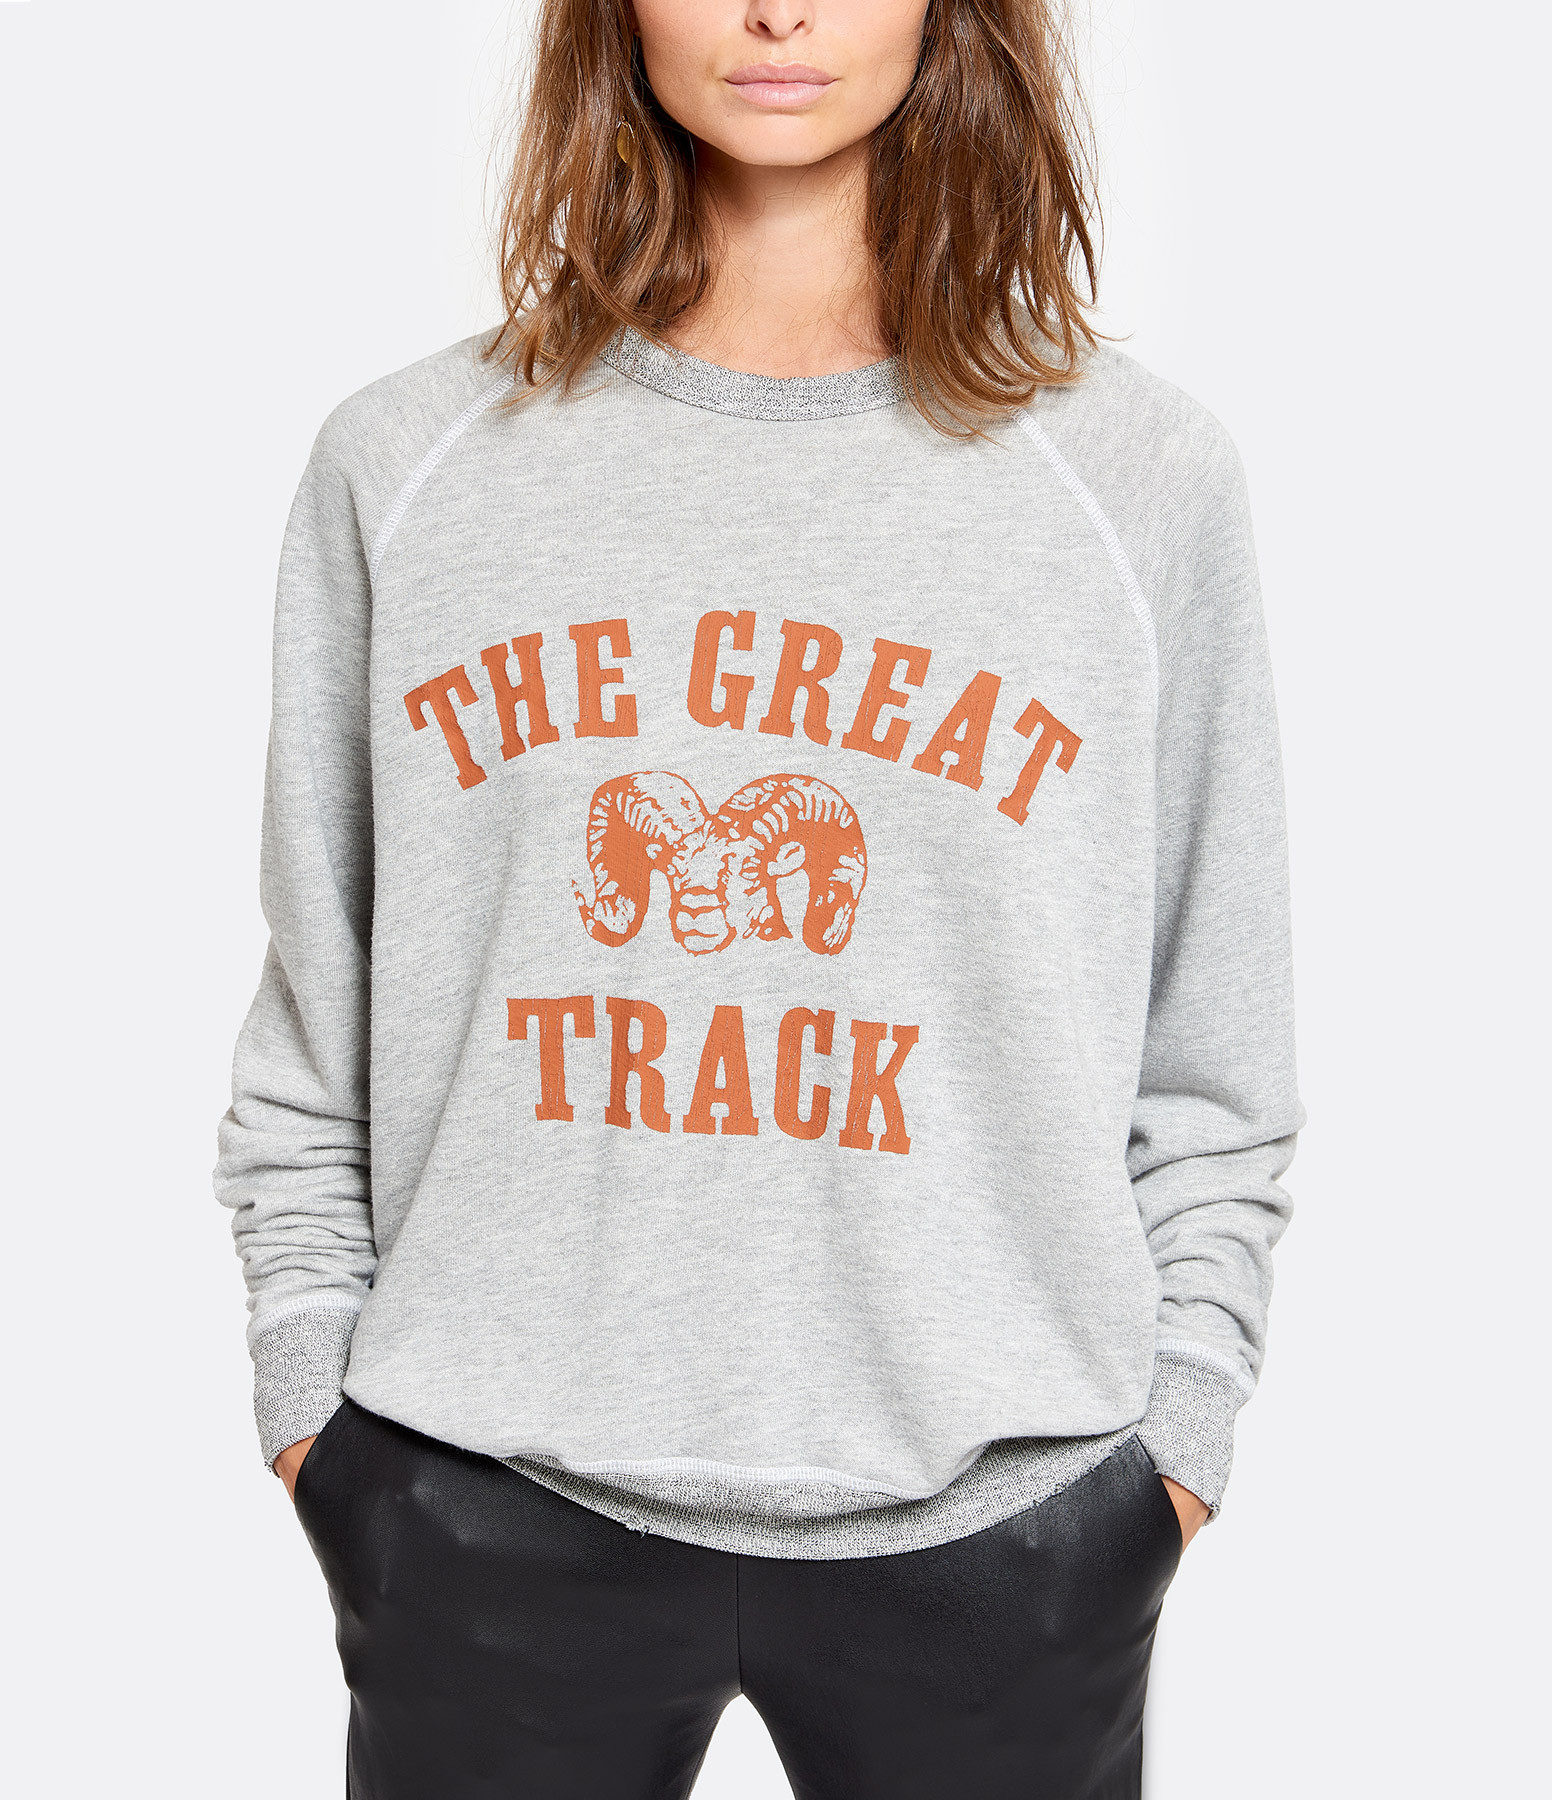 THE GREAT - Sweatshirt The College Coton Gris